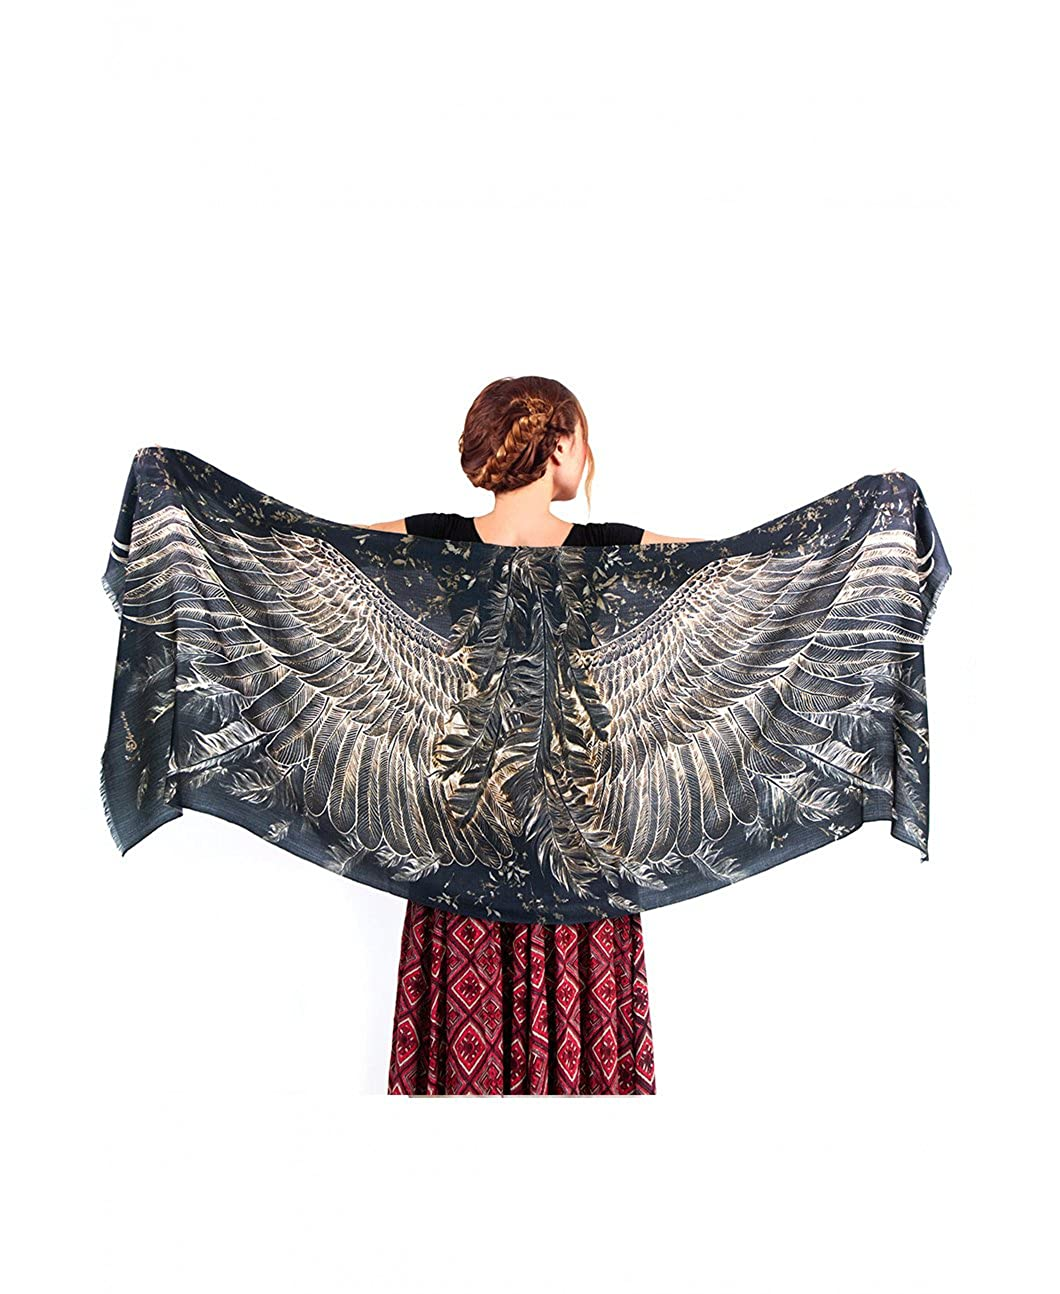 9495956639534 Delicately hand-painted and digitally printed Art of Black Wide-Spread Bird  Wings Just put it over your shoulders to look   feel divine.